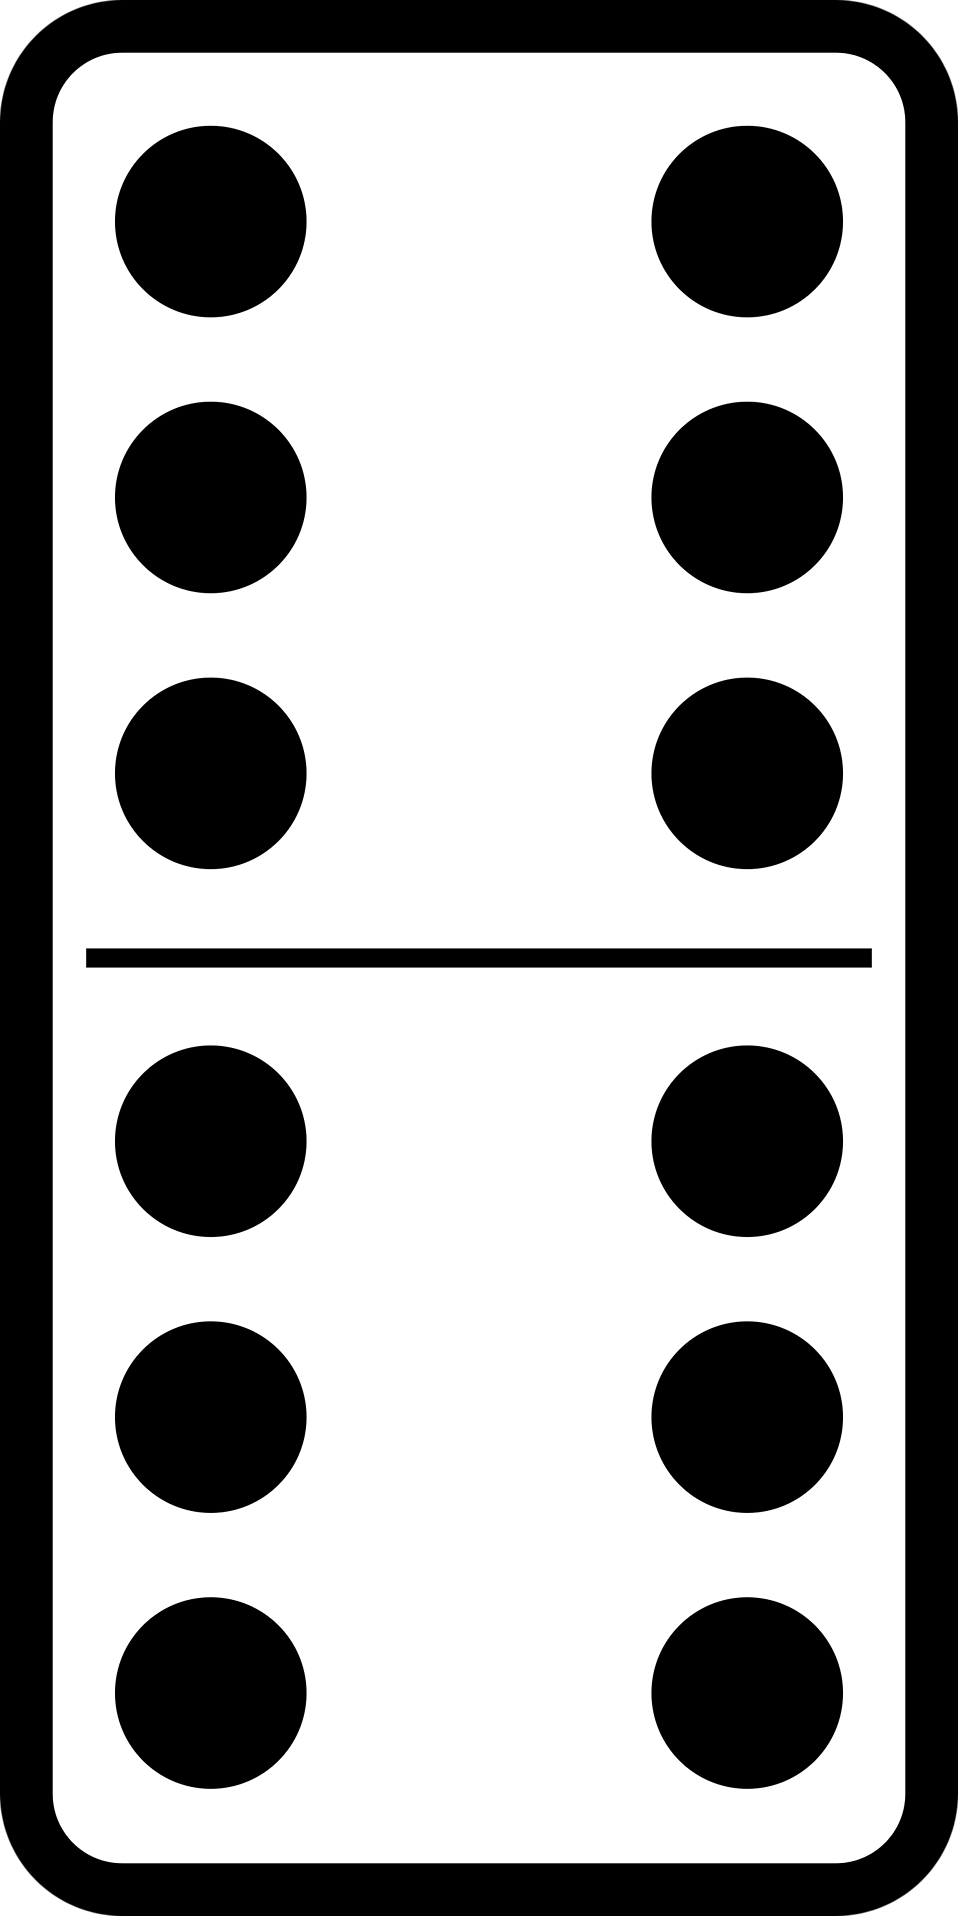 Illustration of a domino tile.png